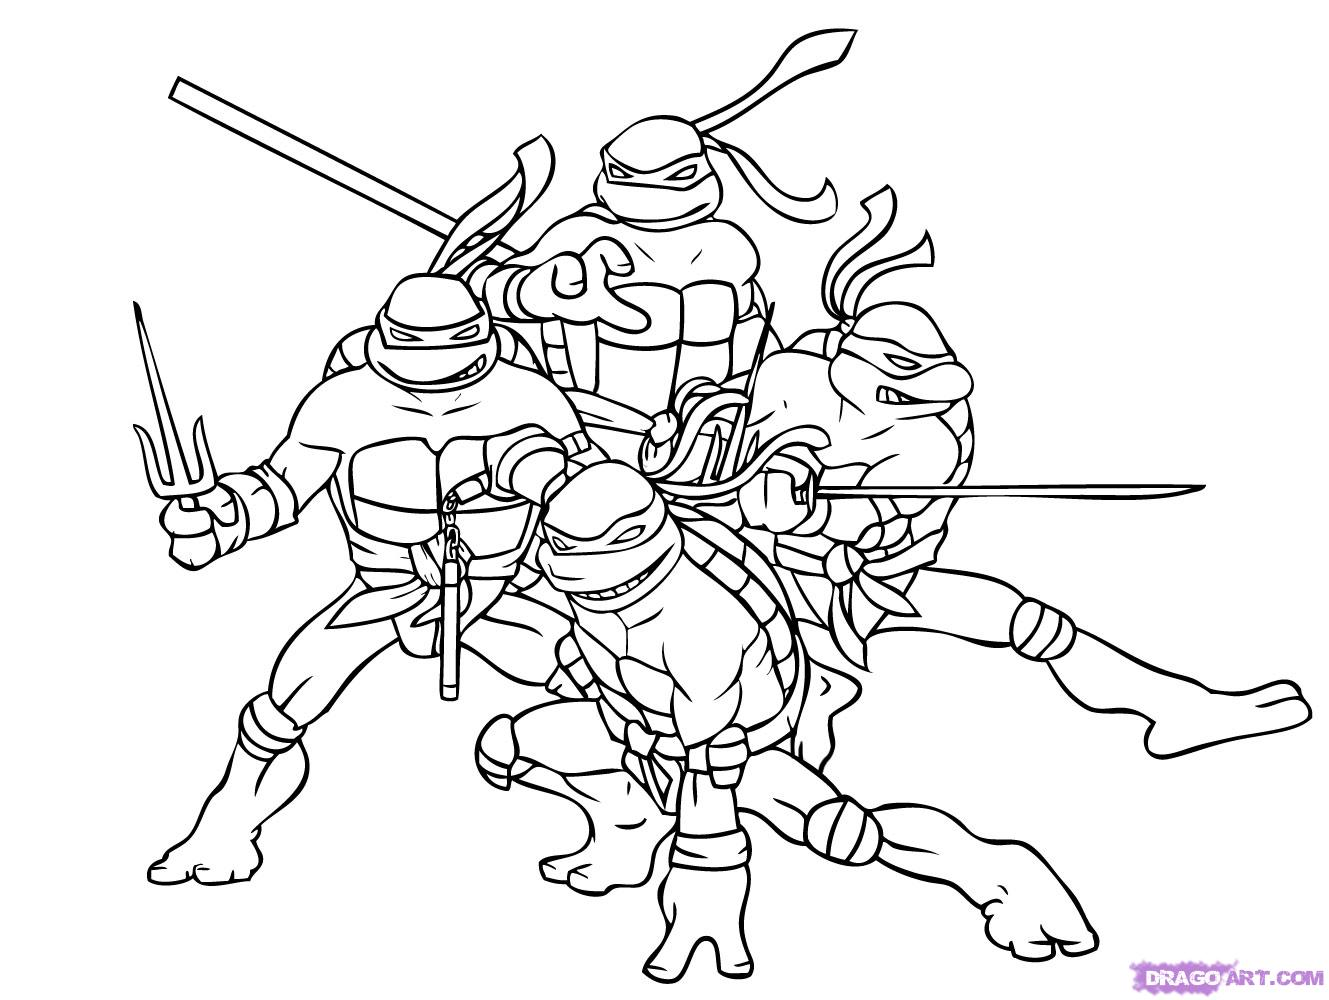 teenage mutant ninja turtles coloring pages | Ninja Turtle Coloring Pages - Free Printable Pictures ...